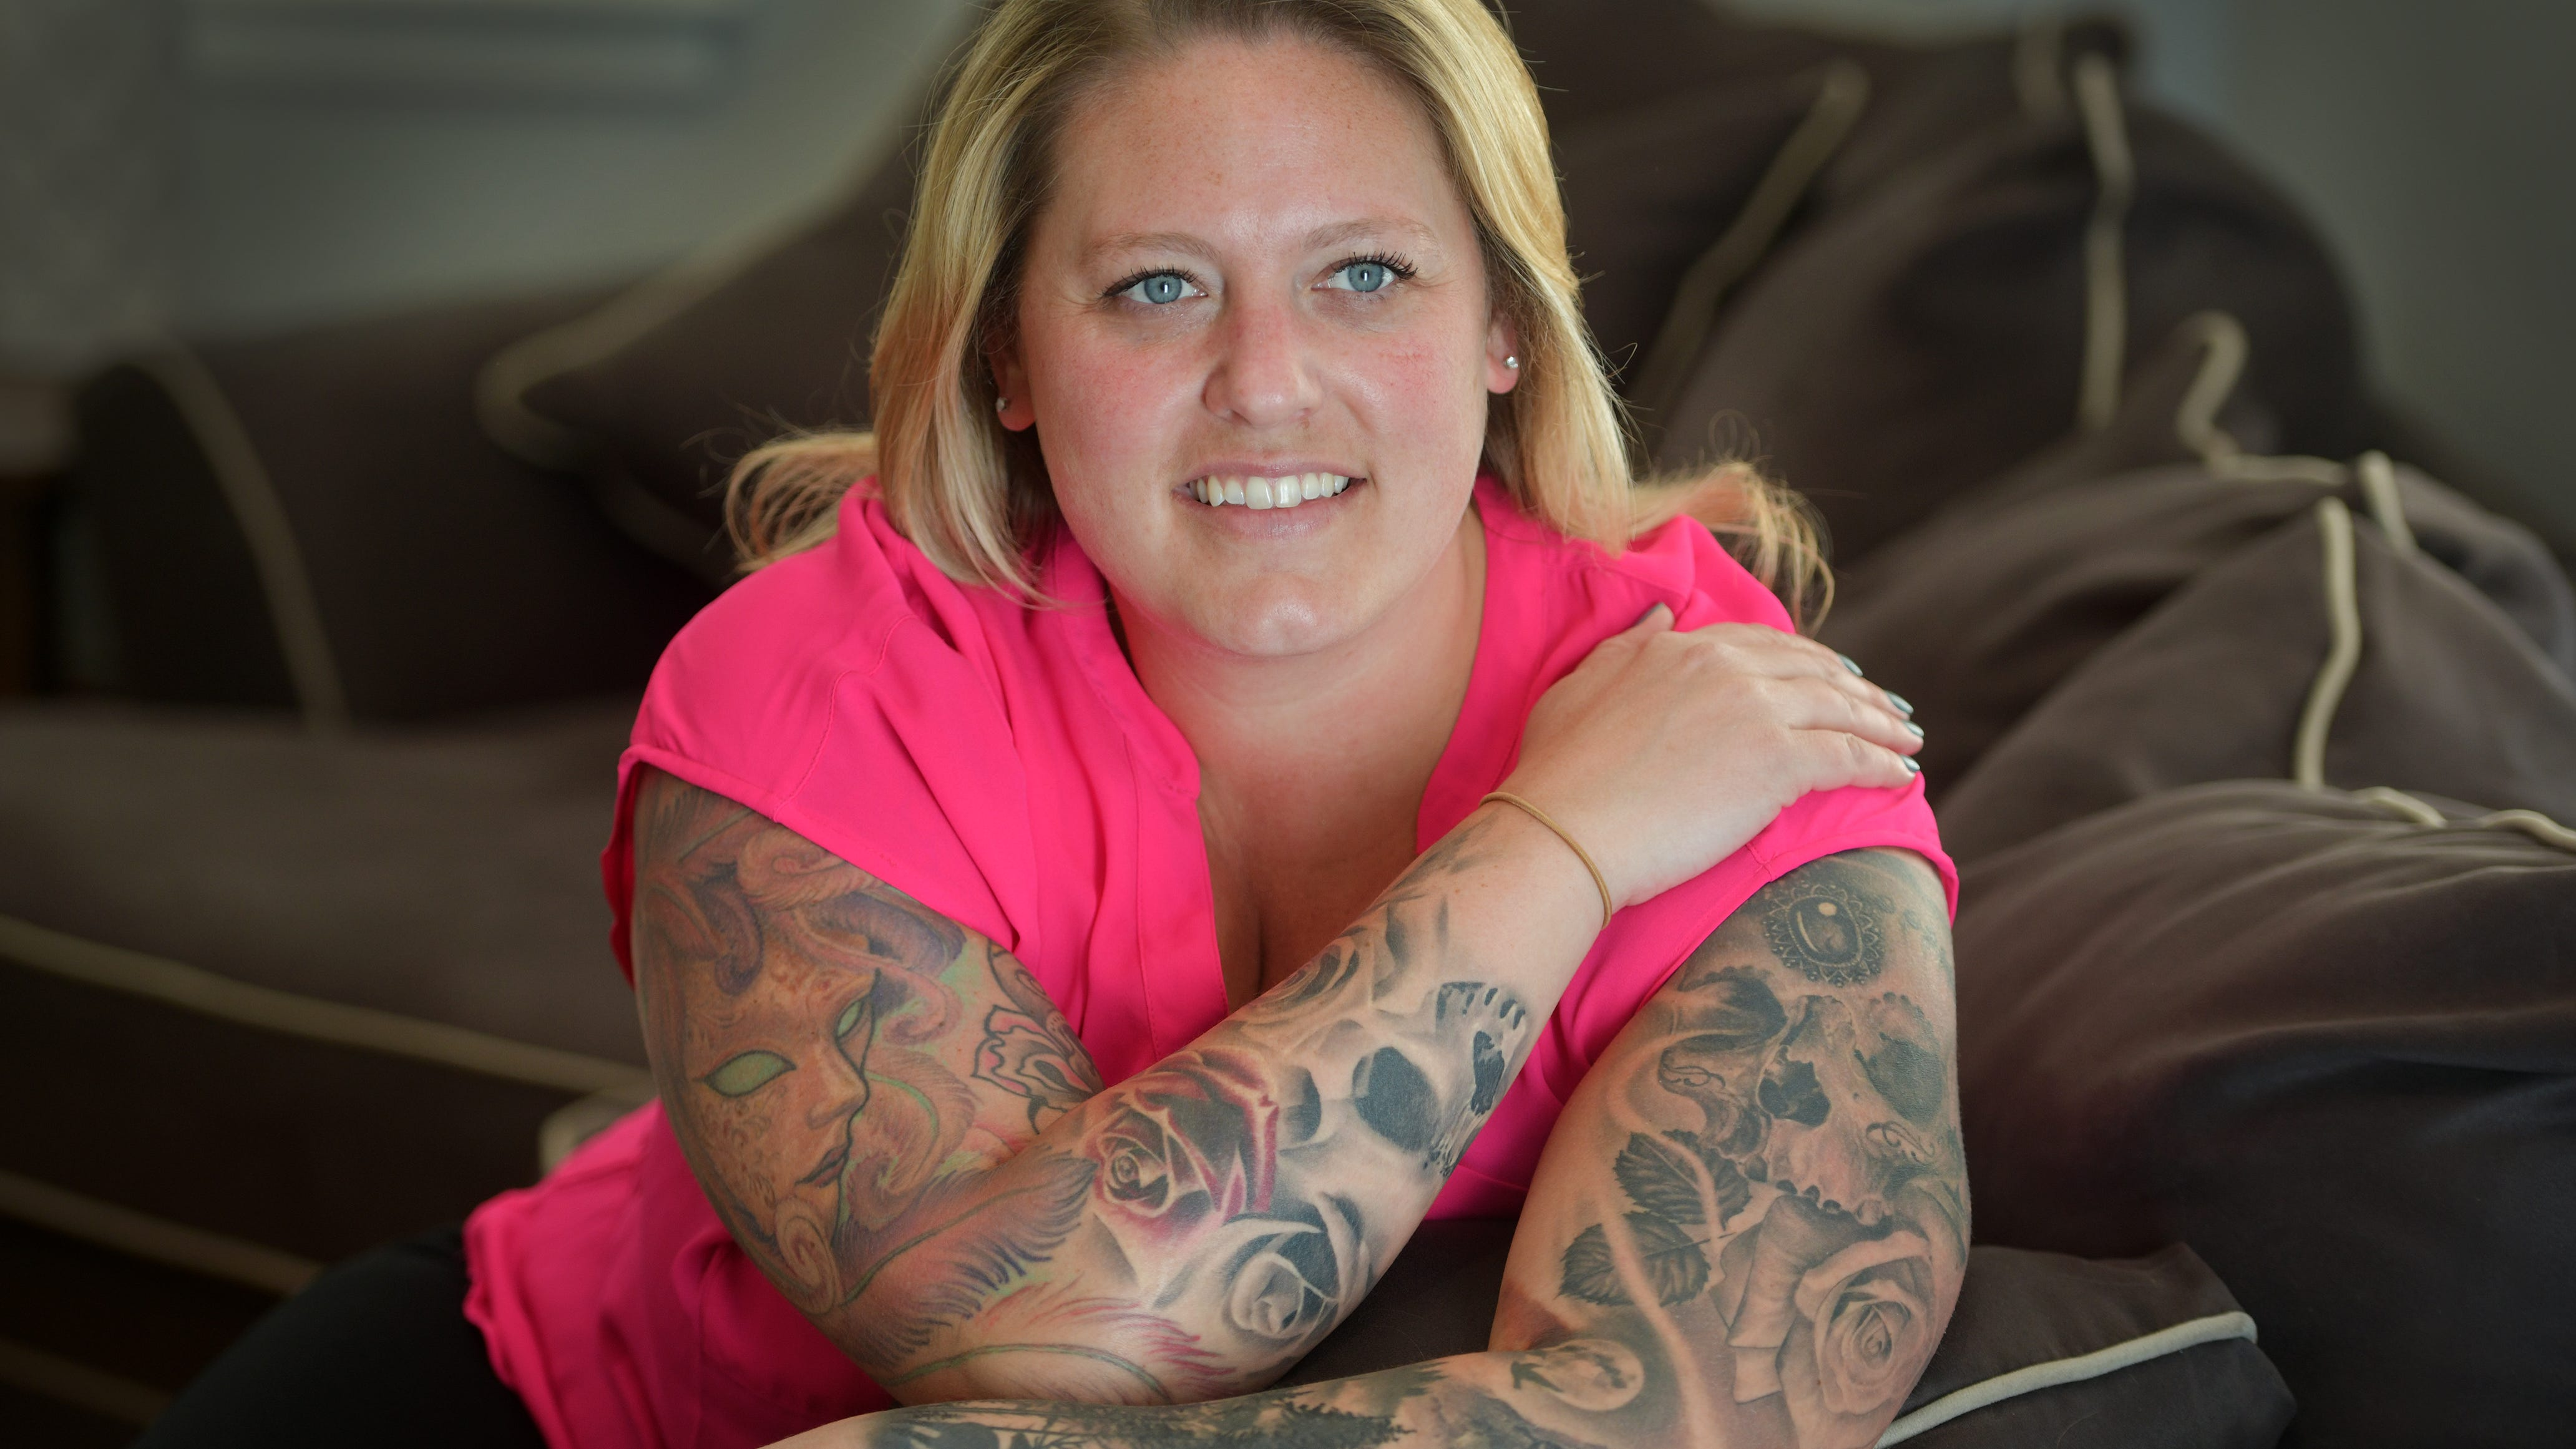 Vying for top marks as tattoo magazine cover girl